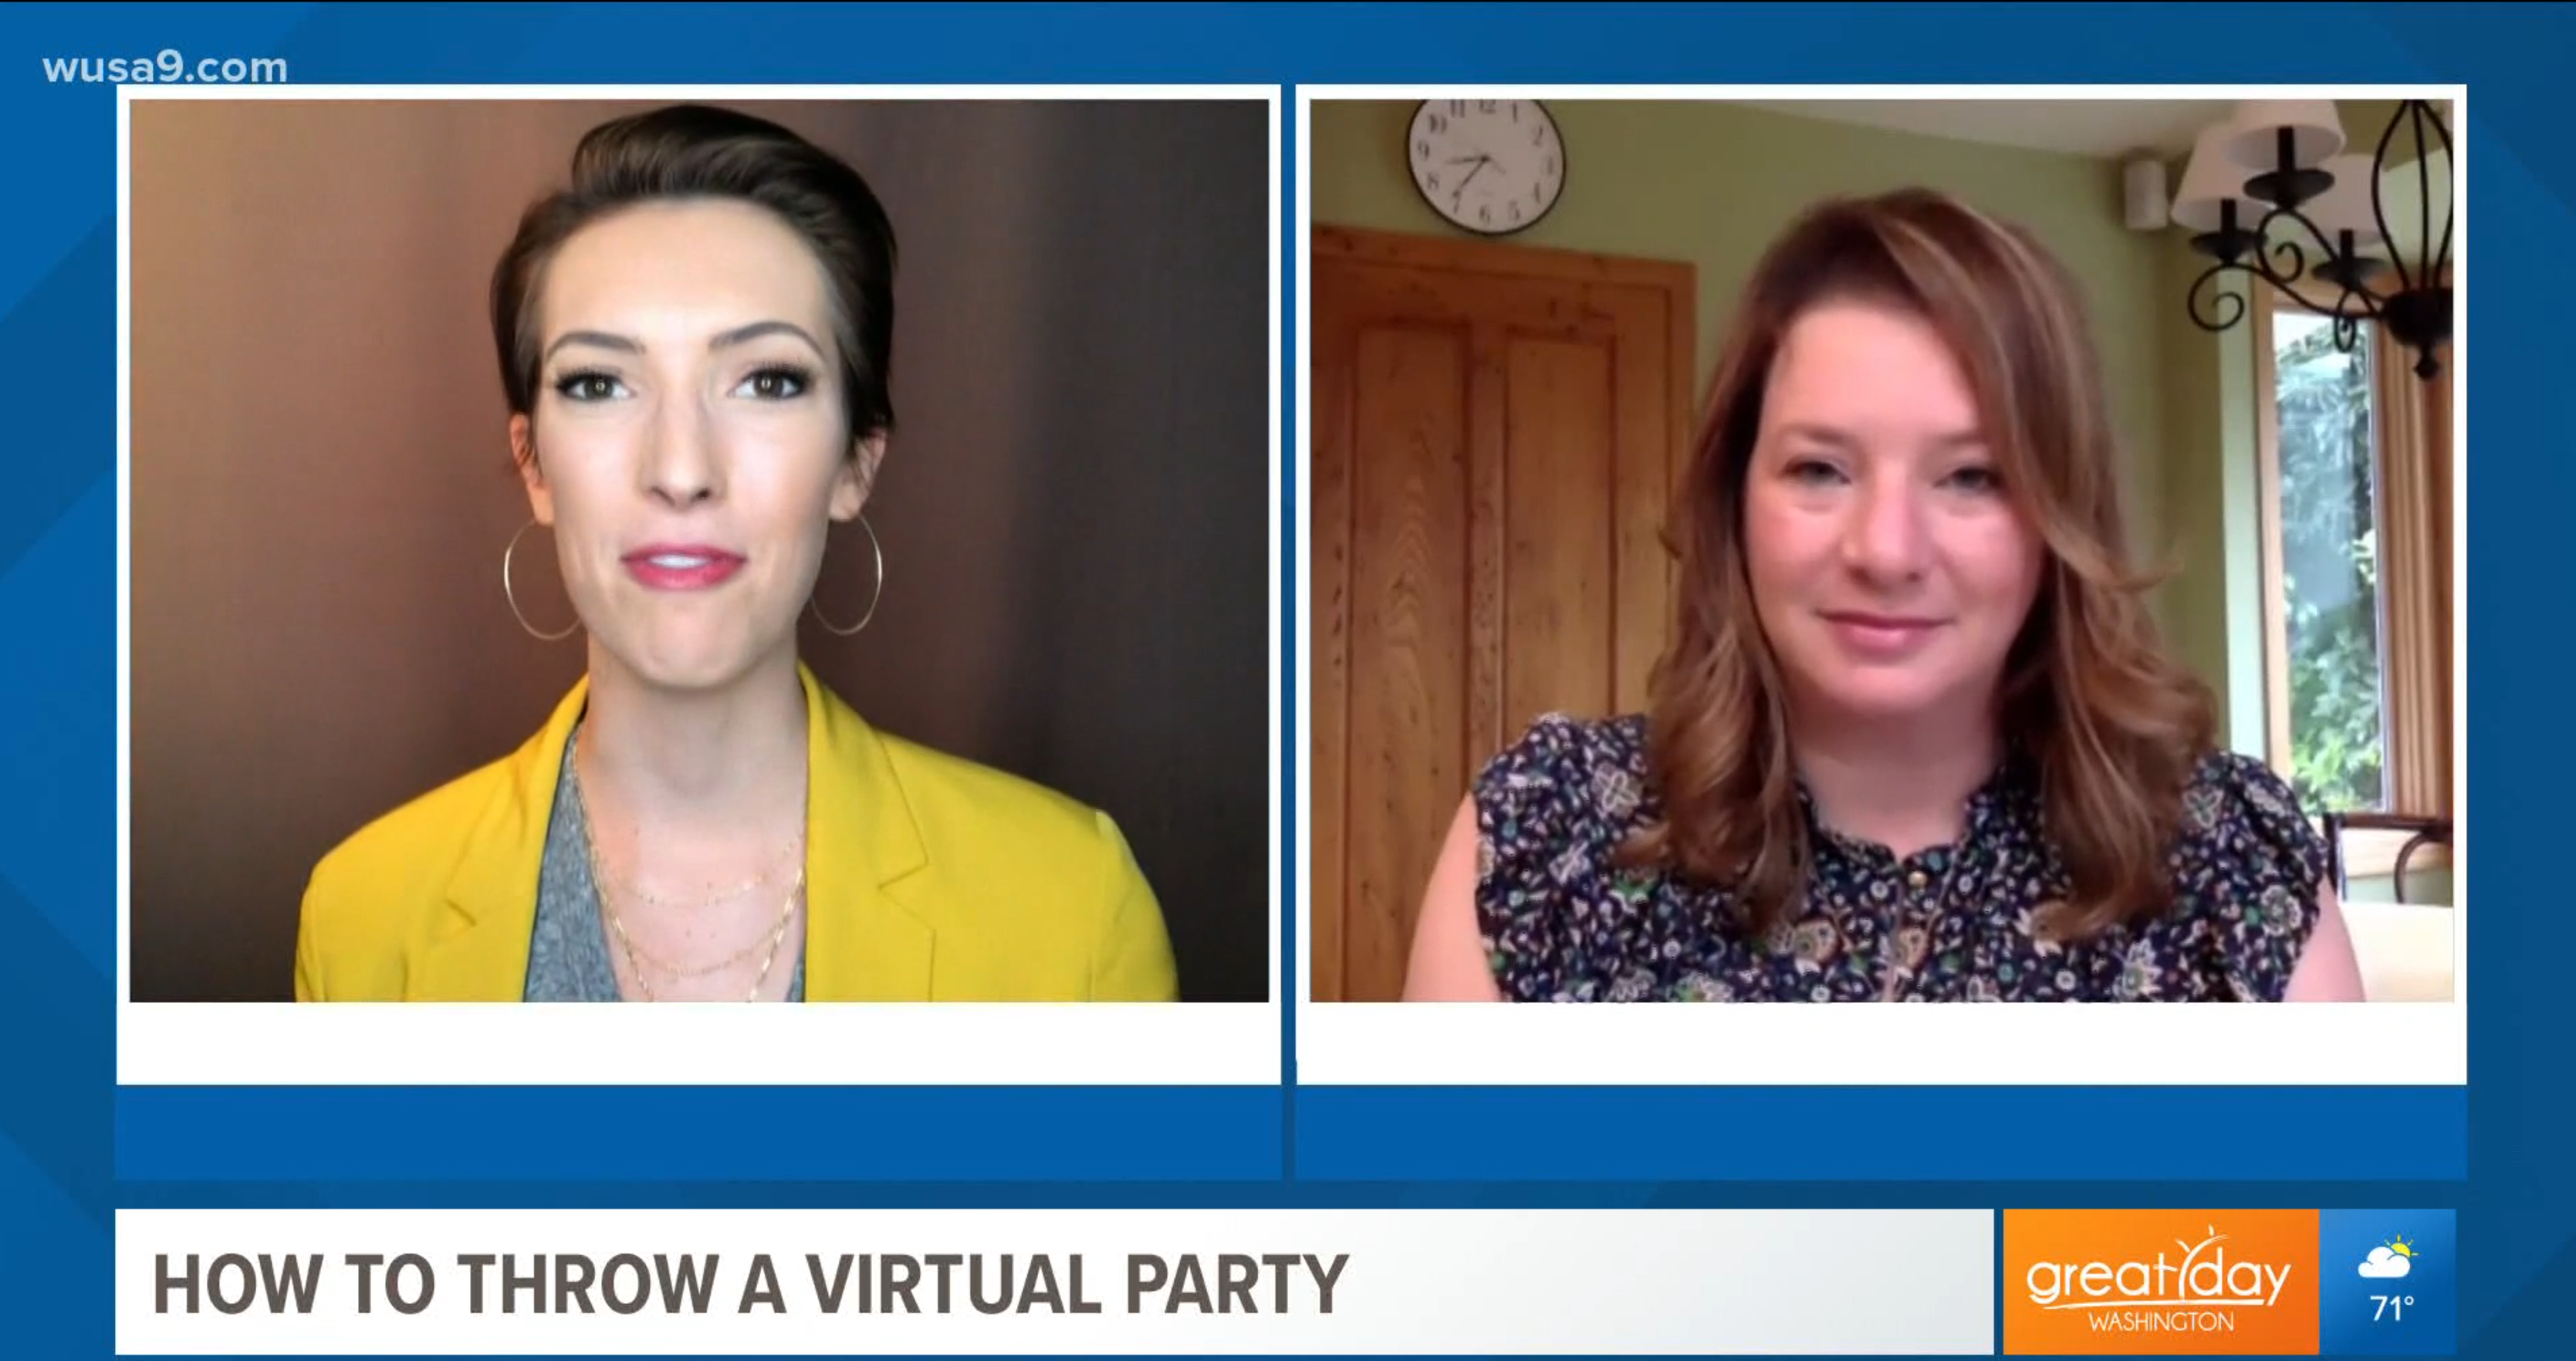 Press: Don't fret! Go ahead and throw that virtual party